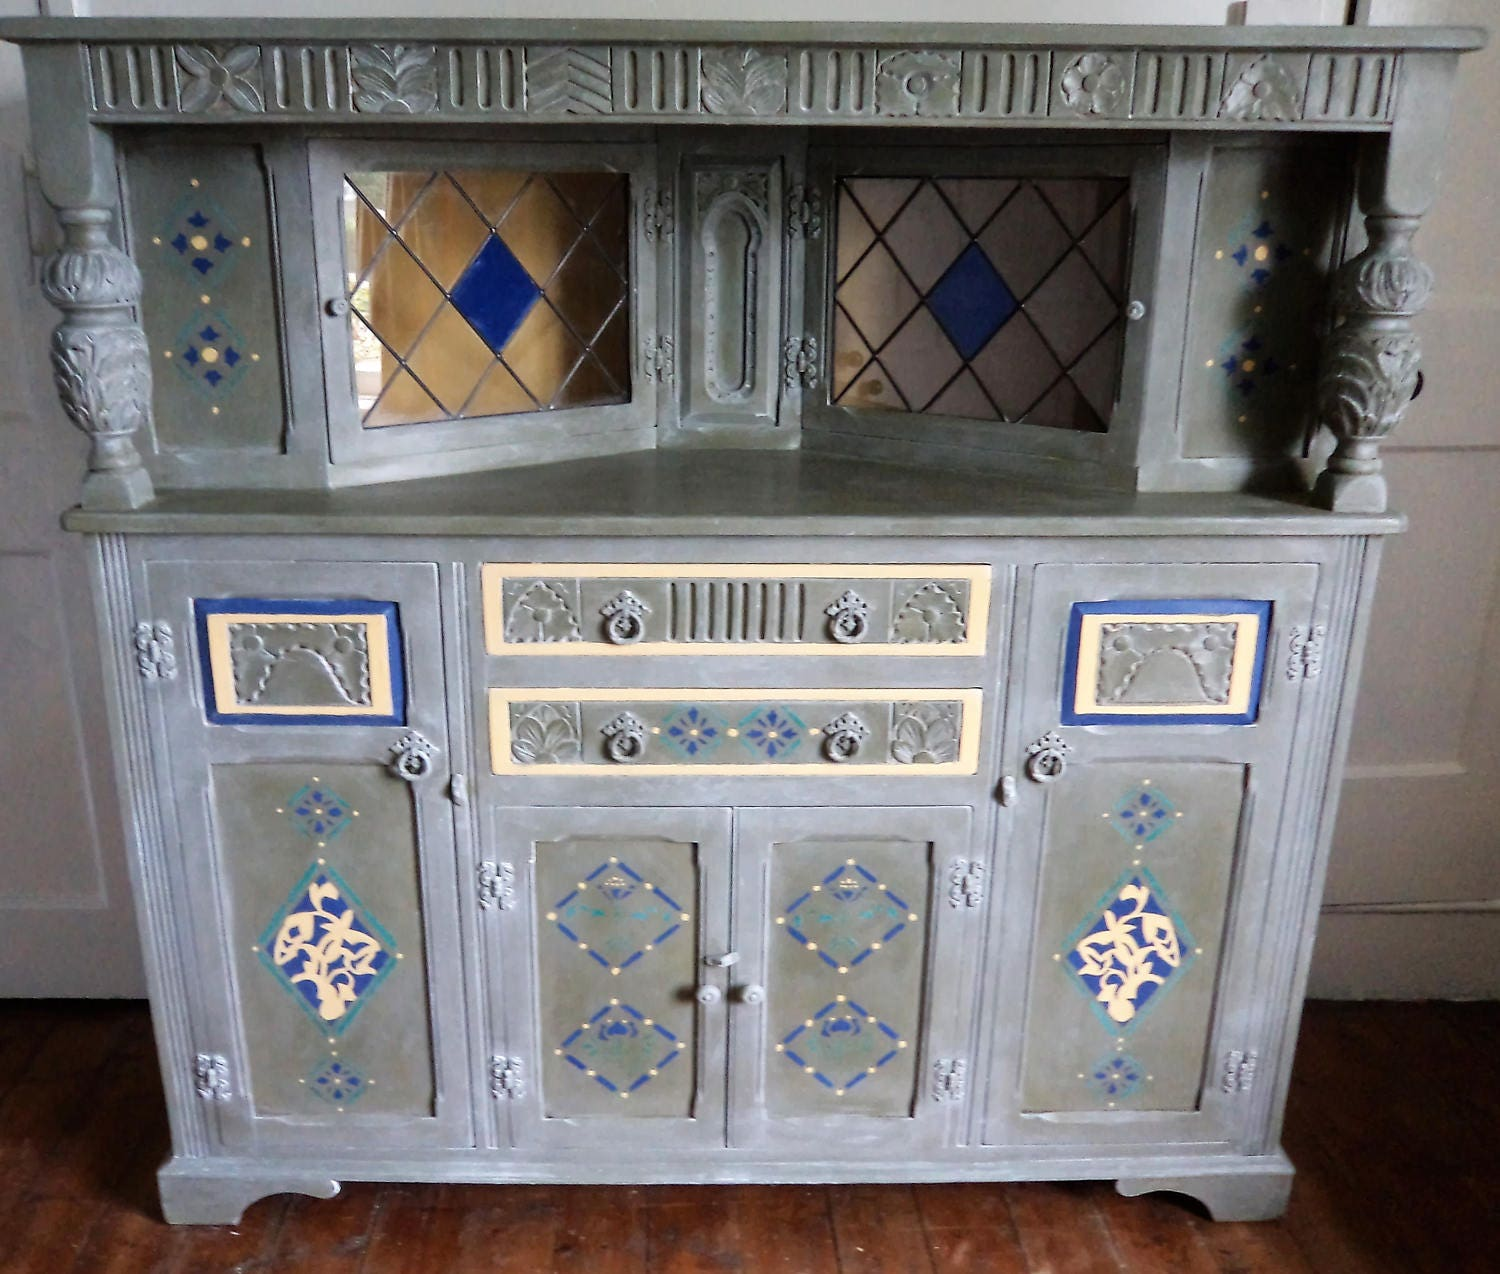 Bespoke large wooden vintage antique sideboard with arts and crafts stencils